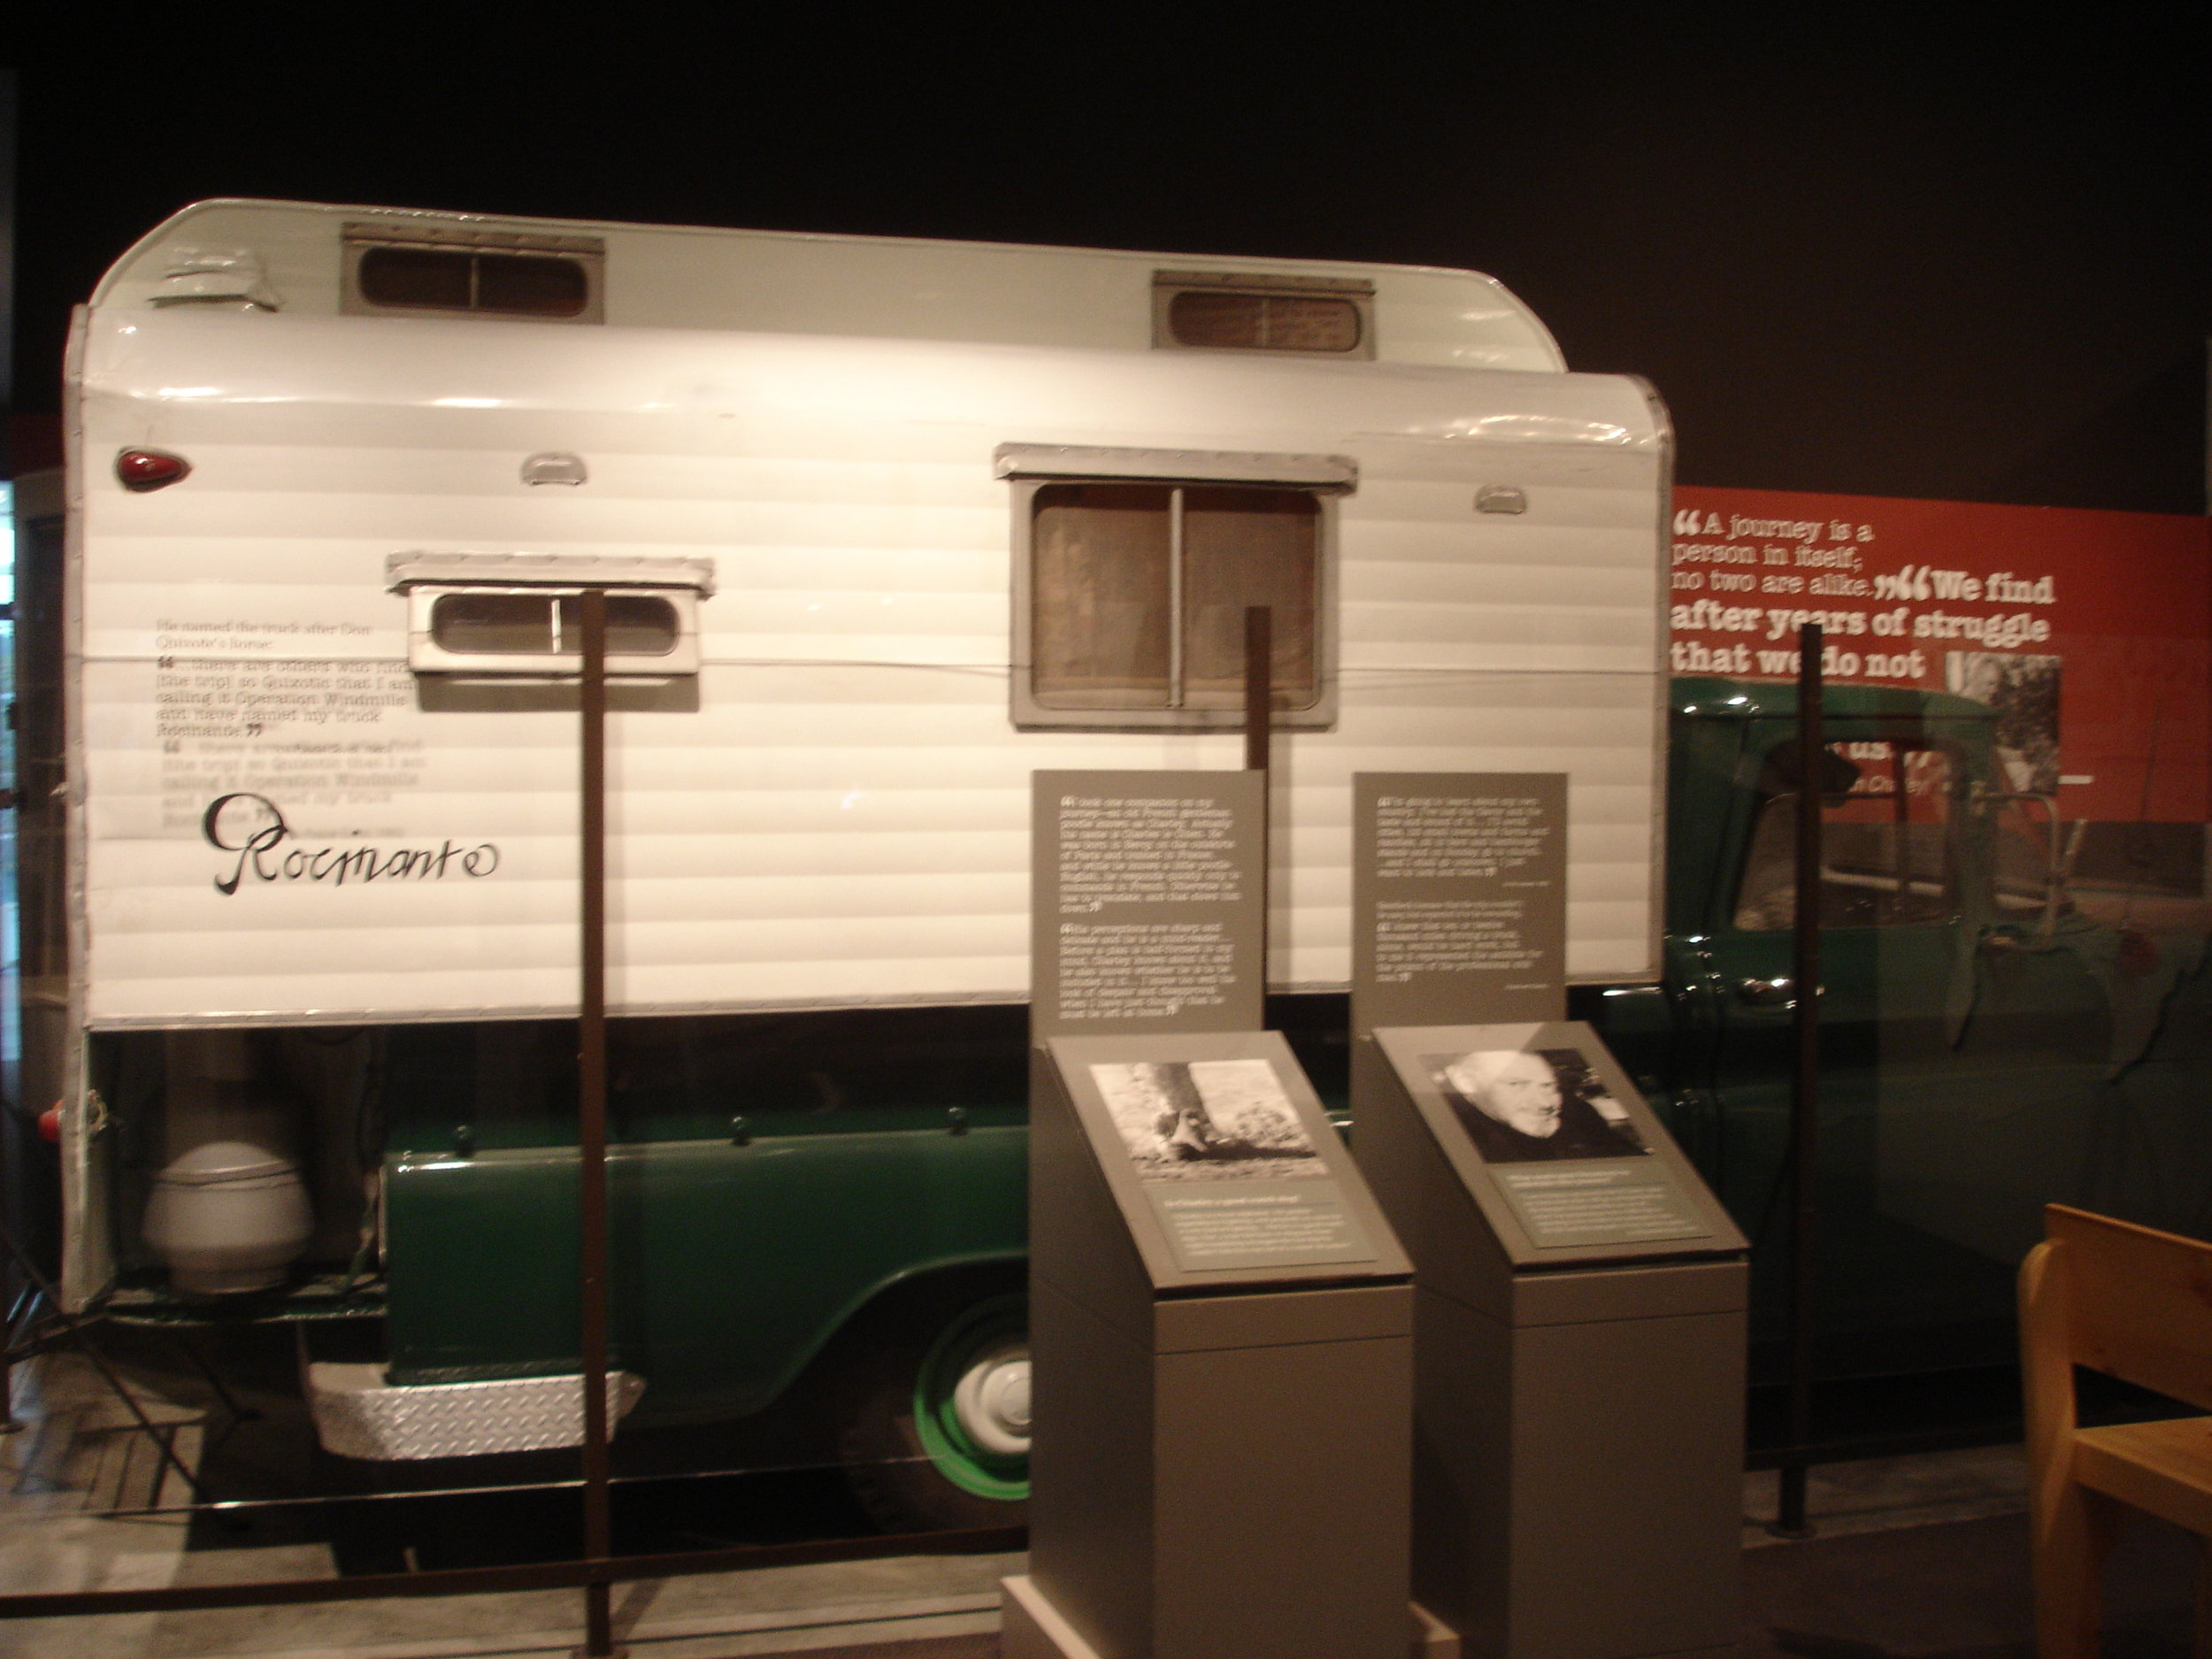 Steinbeck's famous camper, Rocinante, is on display at The National Steinbeck Center in Salinas California. Photo taken by Lord Harris, 1 September 2008, English Wikipedia.